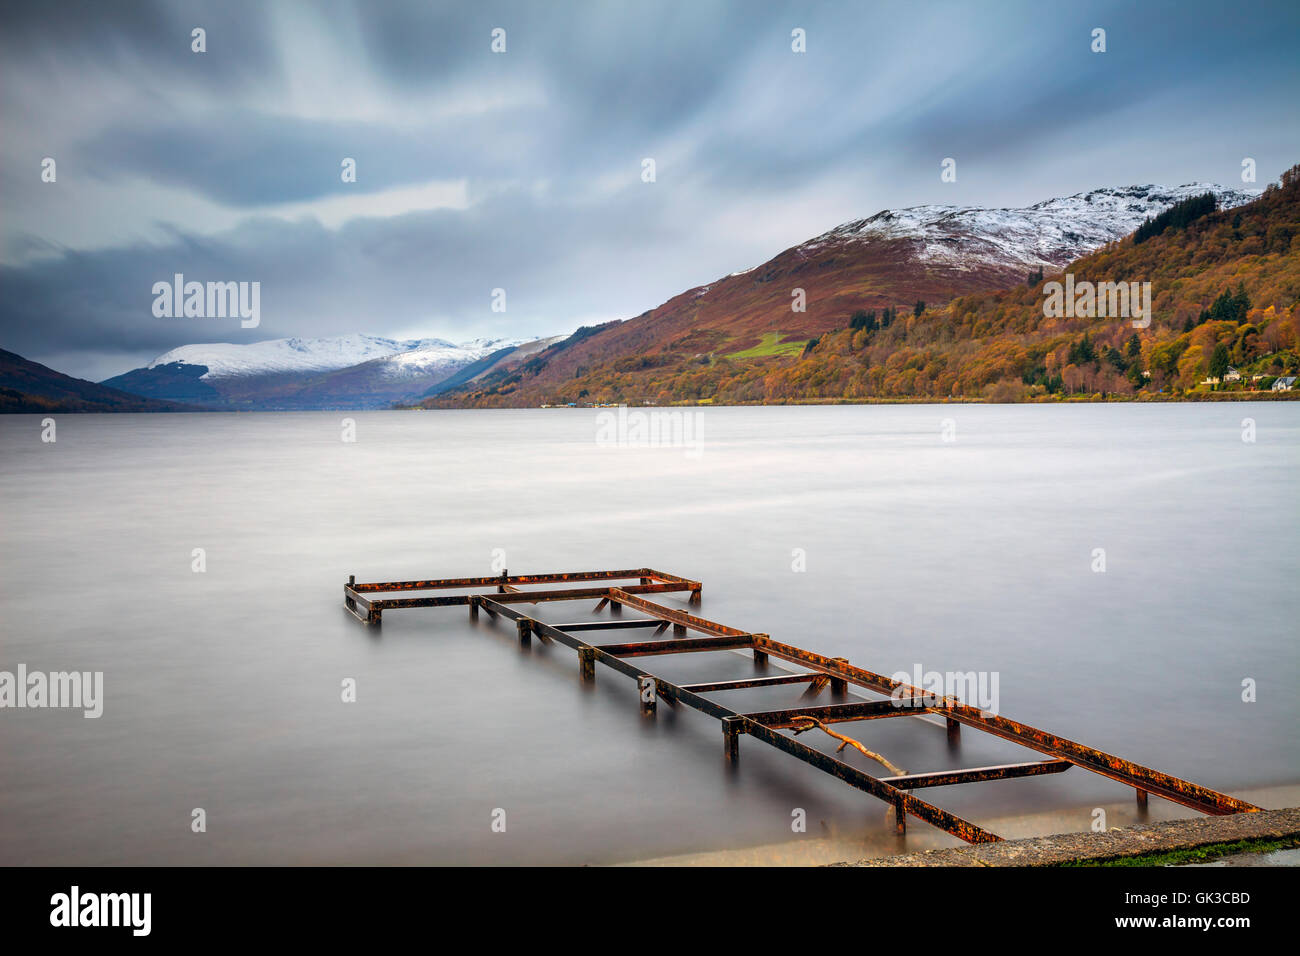 Loch Earn in the Scottish Highlands - Stock Image